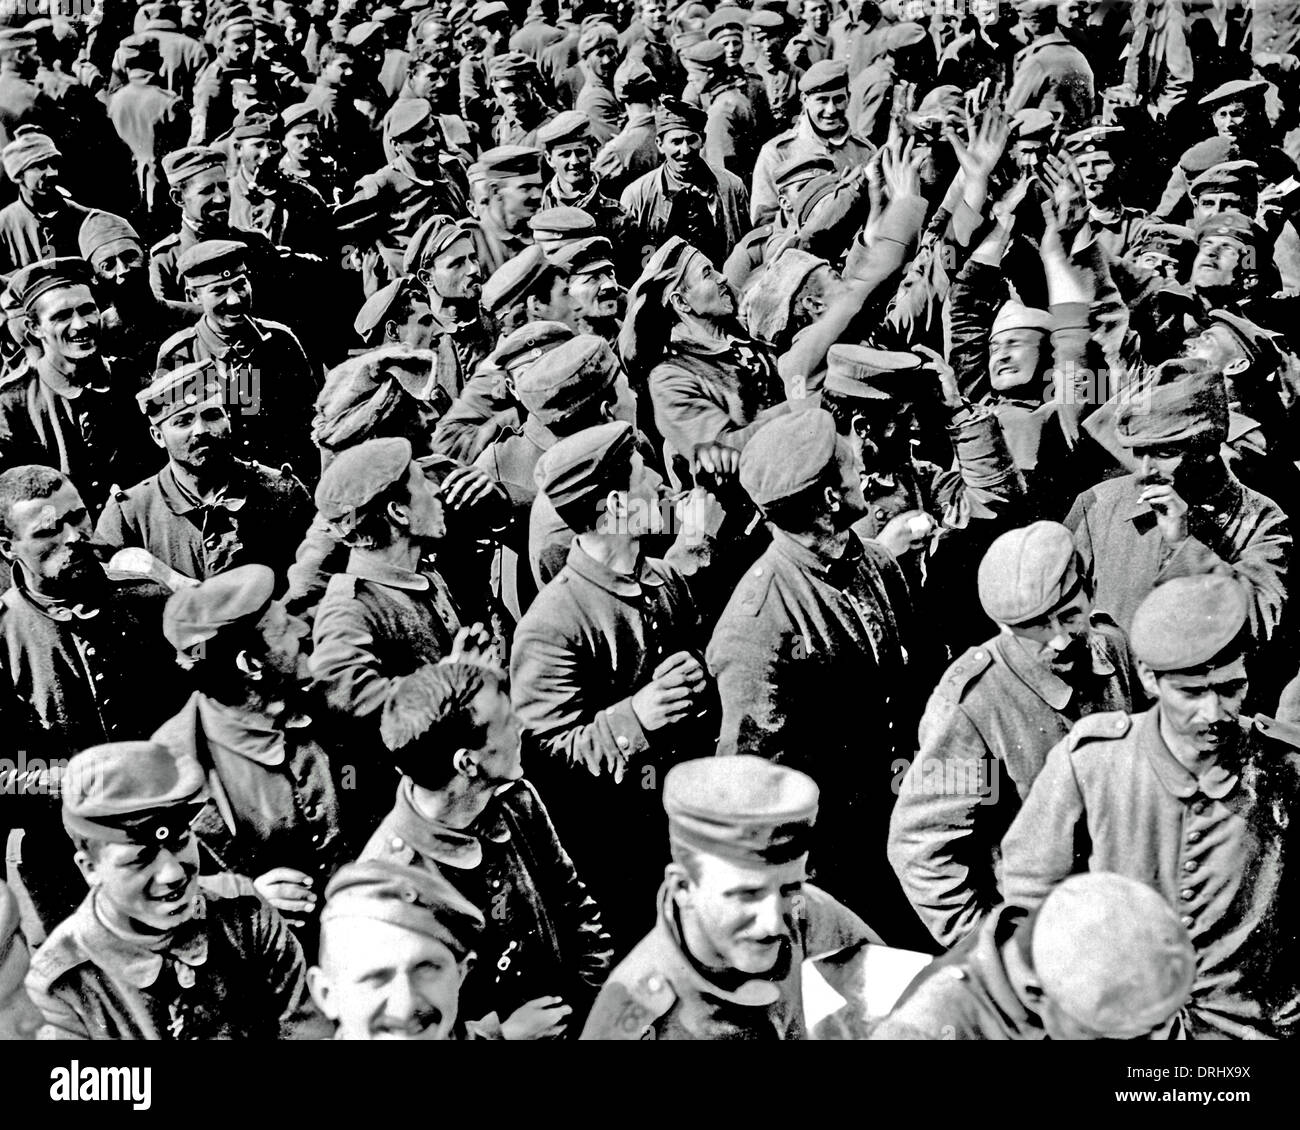 Large crowd of German POWs, Western Front, WW1 Stock Photo